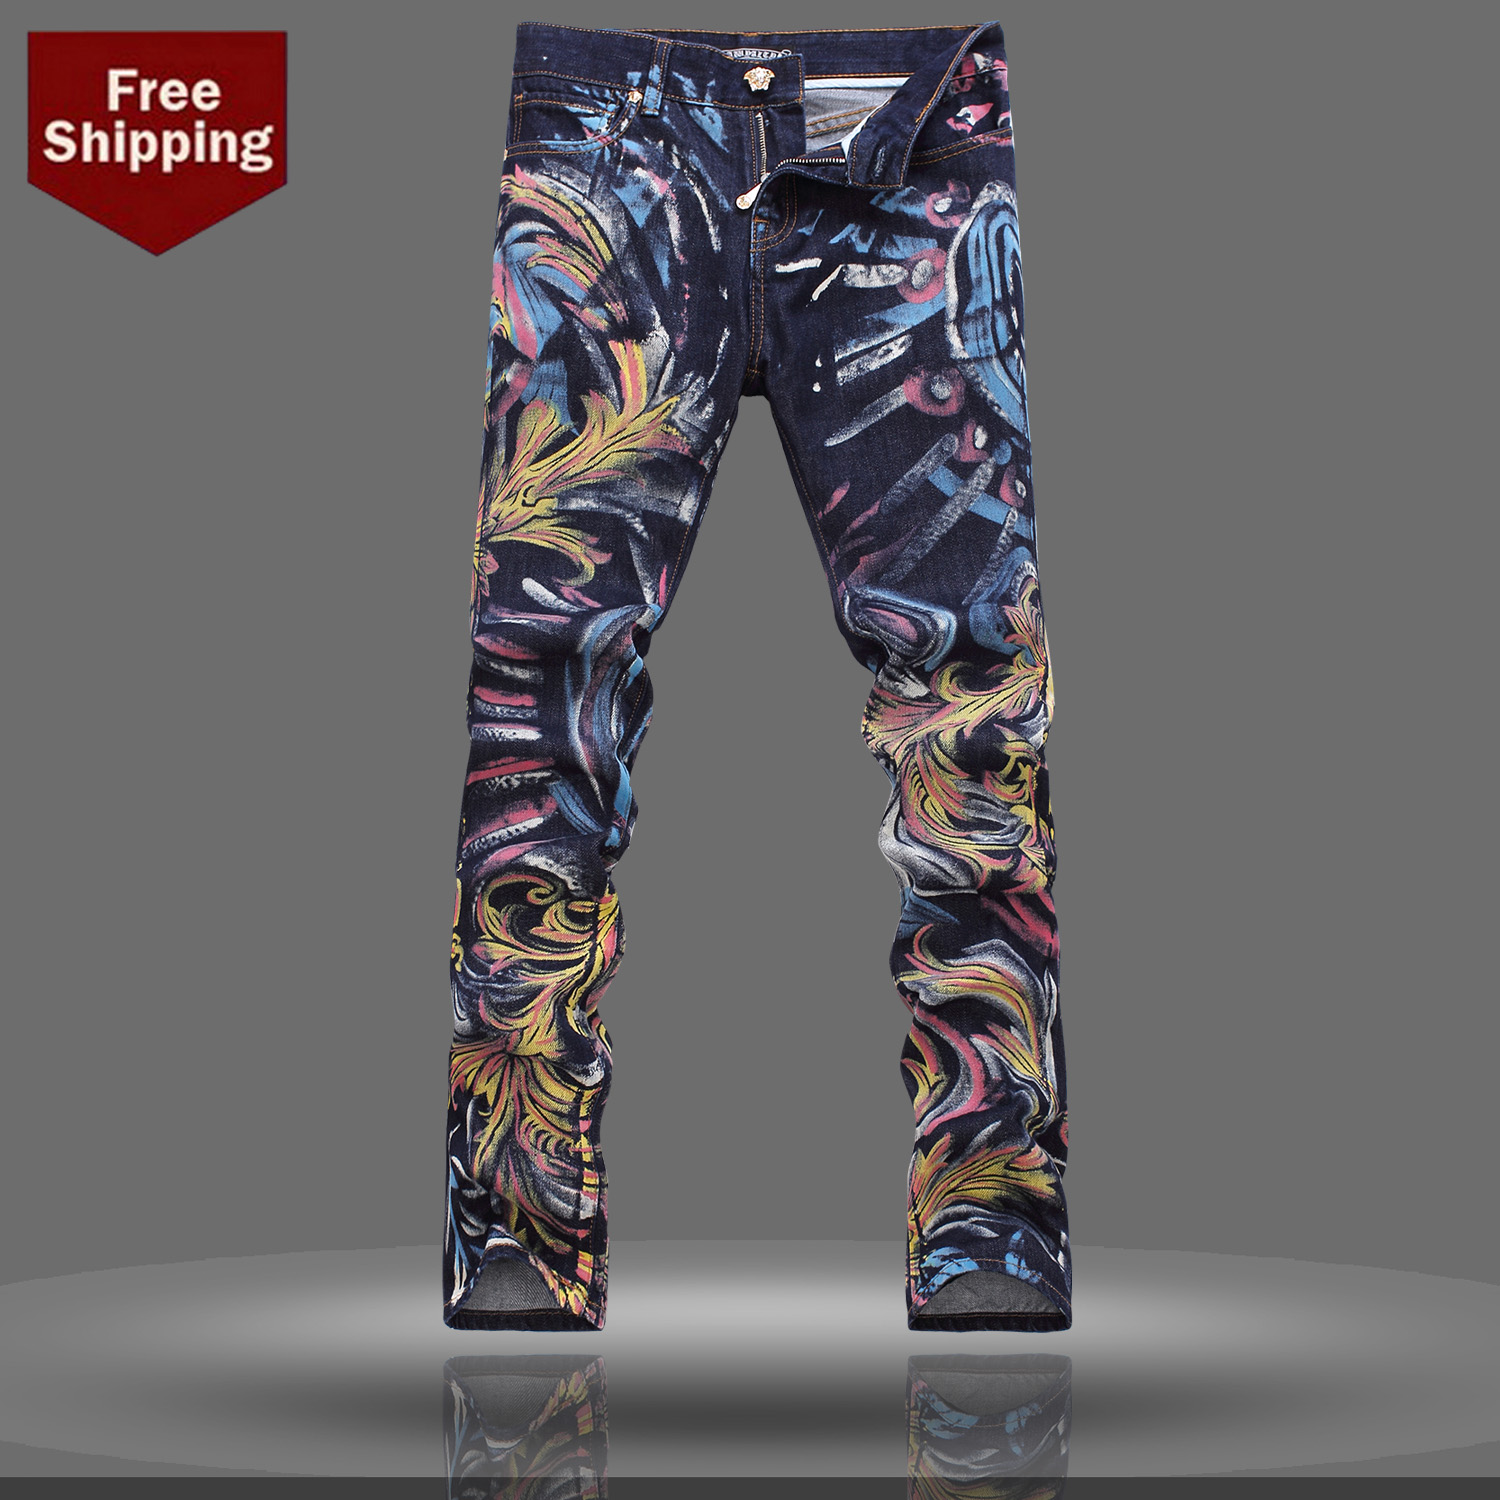 Print jeans male 2014 menu0026#39;s autumn and winter clothing doodle colored drawing jeans trousers ...